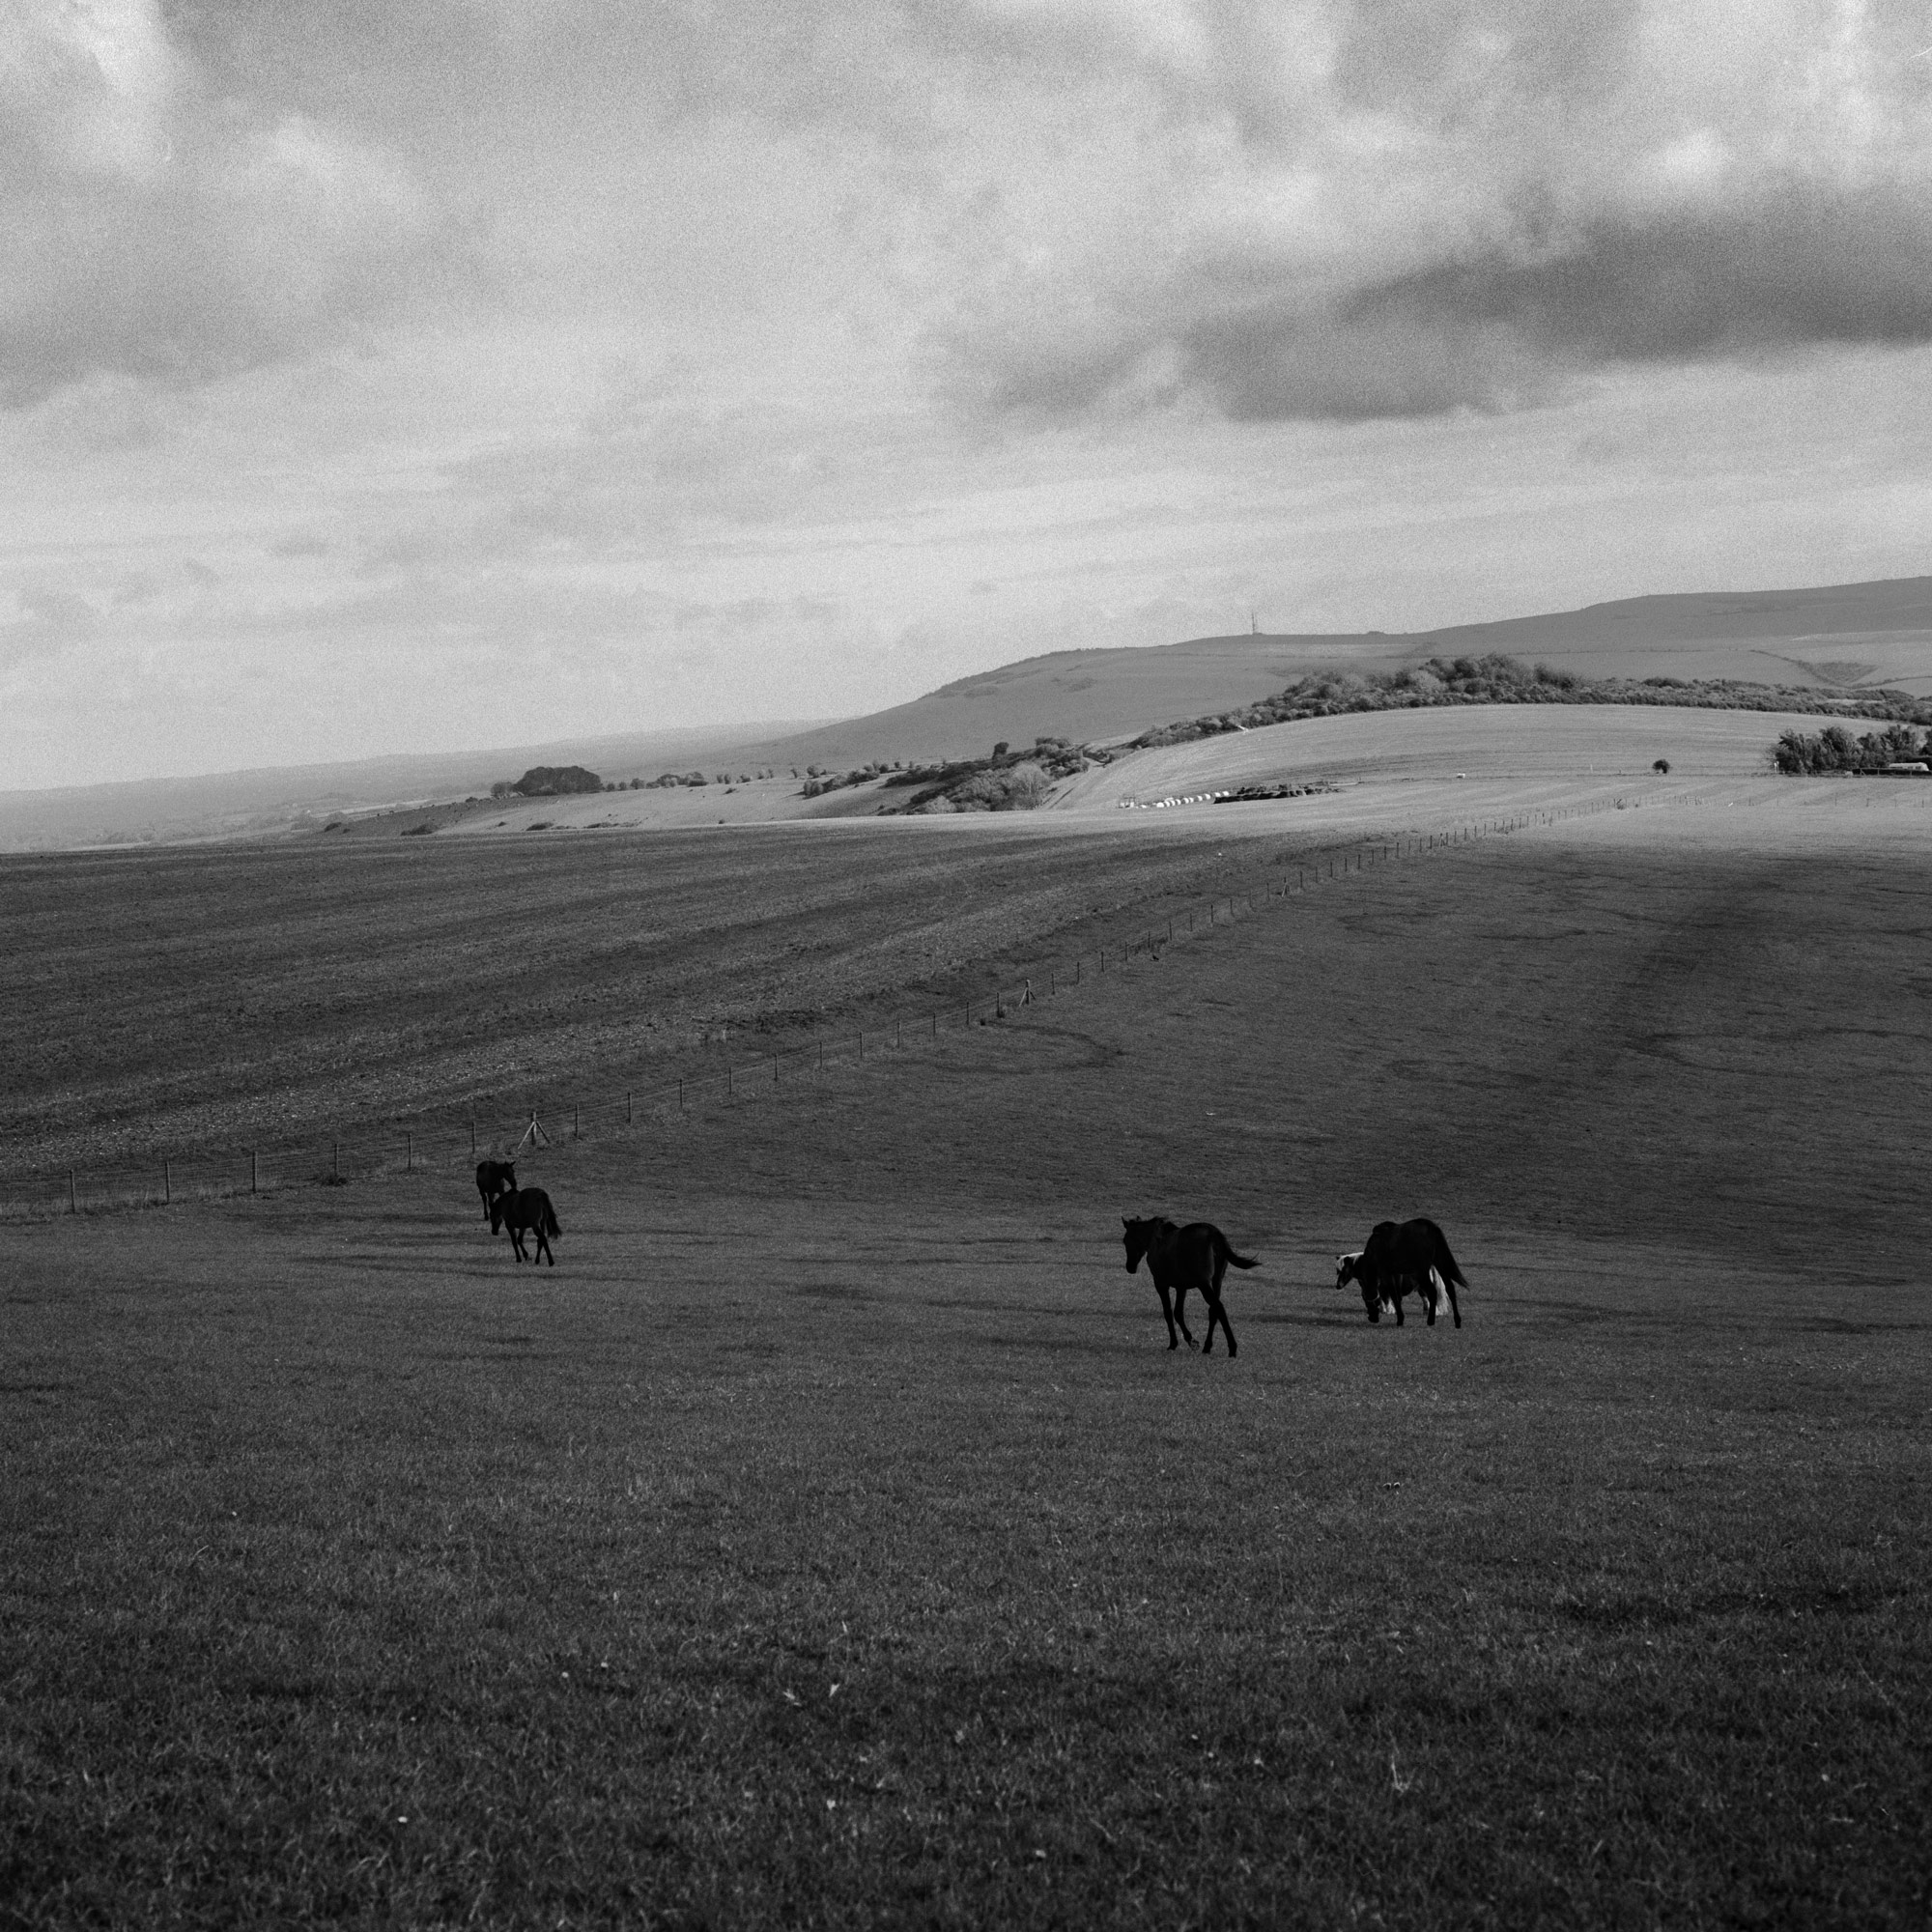 Horses roaming in a field, black and white photo by Ioannis Koussertari.